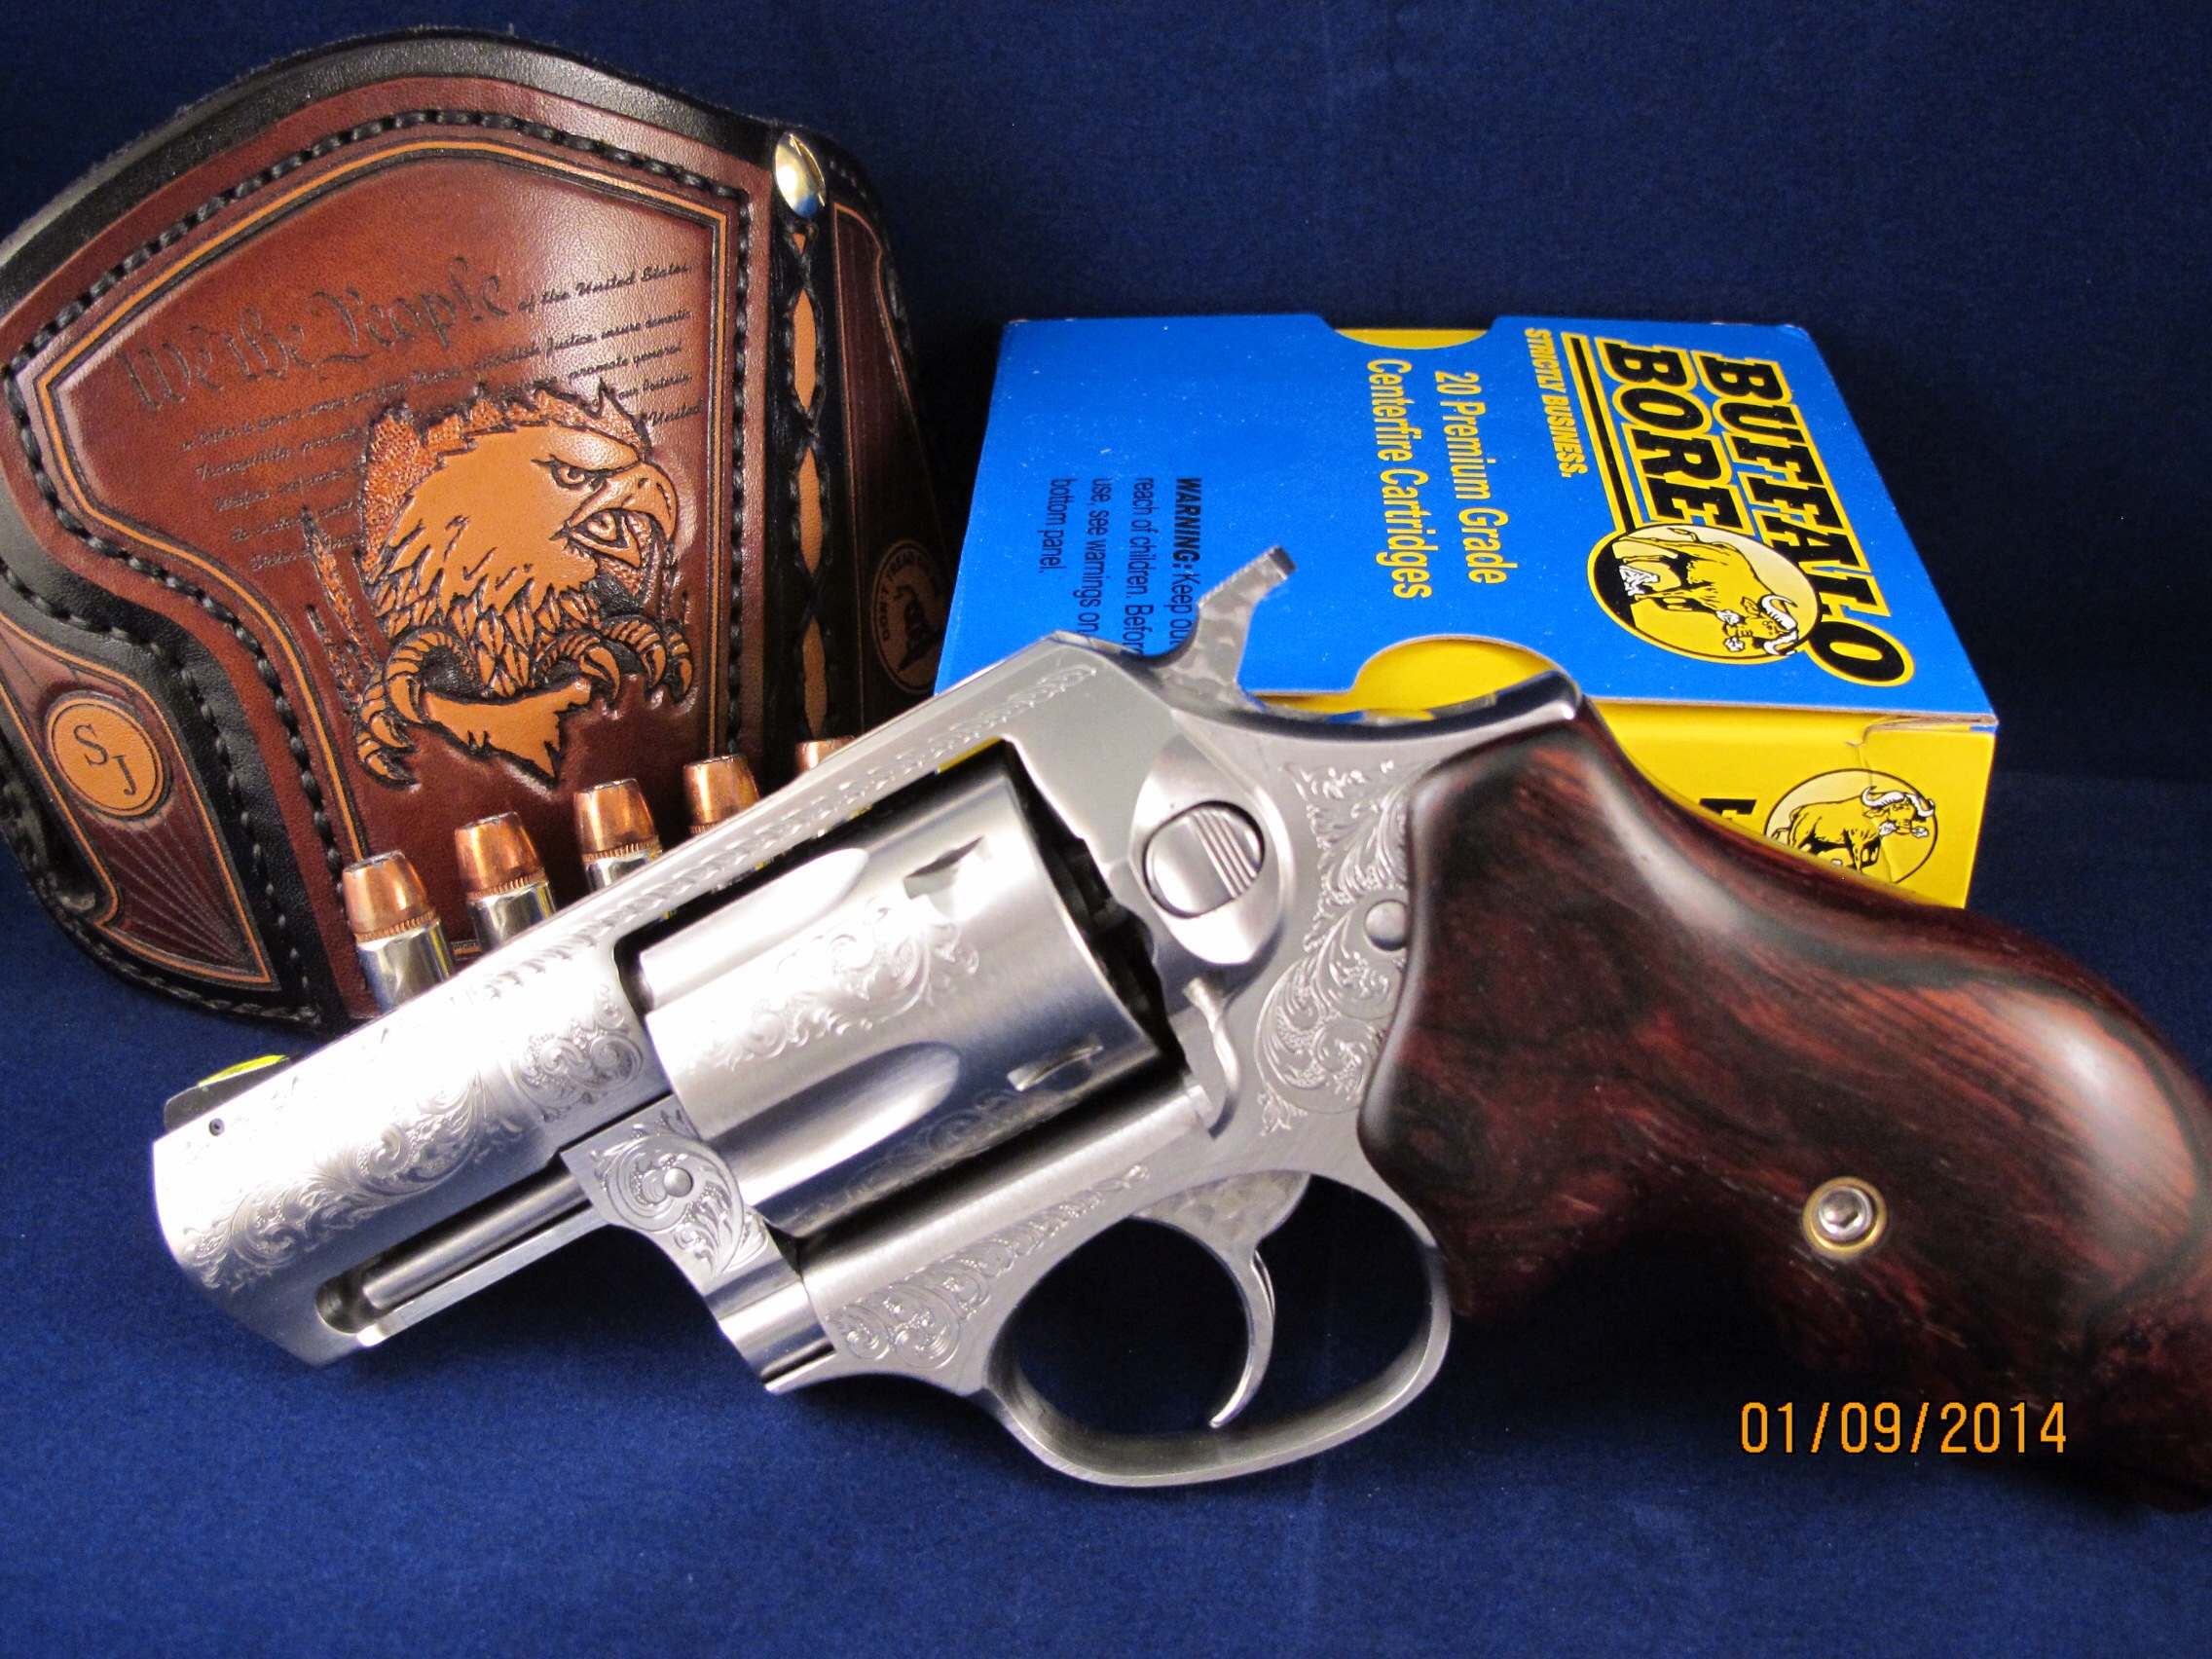 Who carries a 357 snub nose revolver loaded with 38 Special